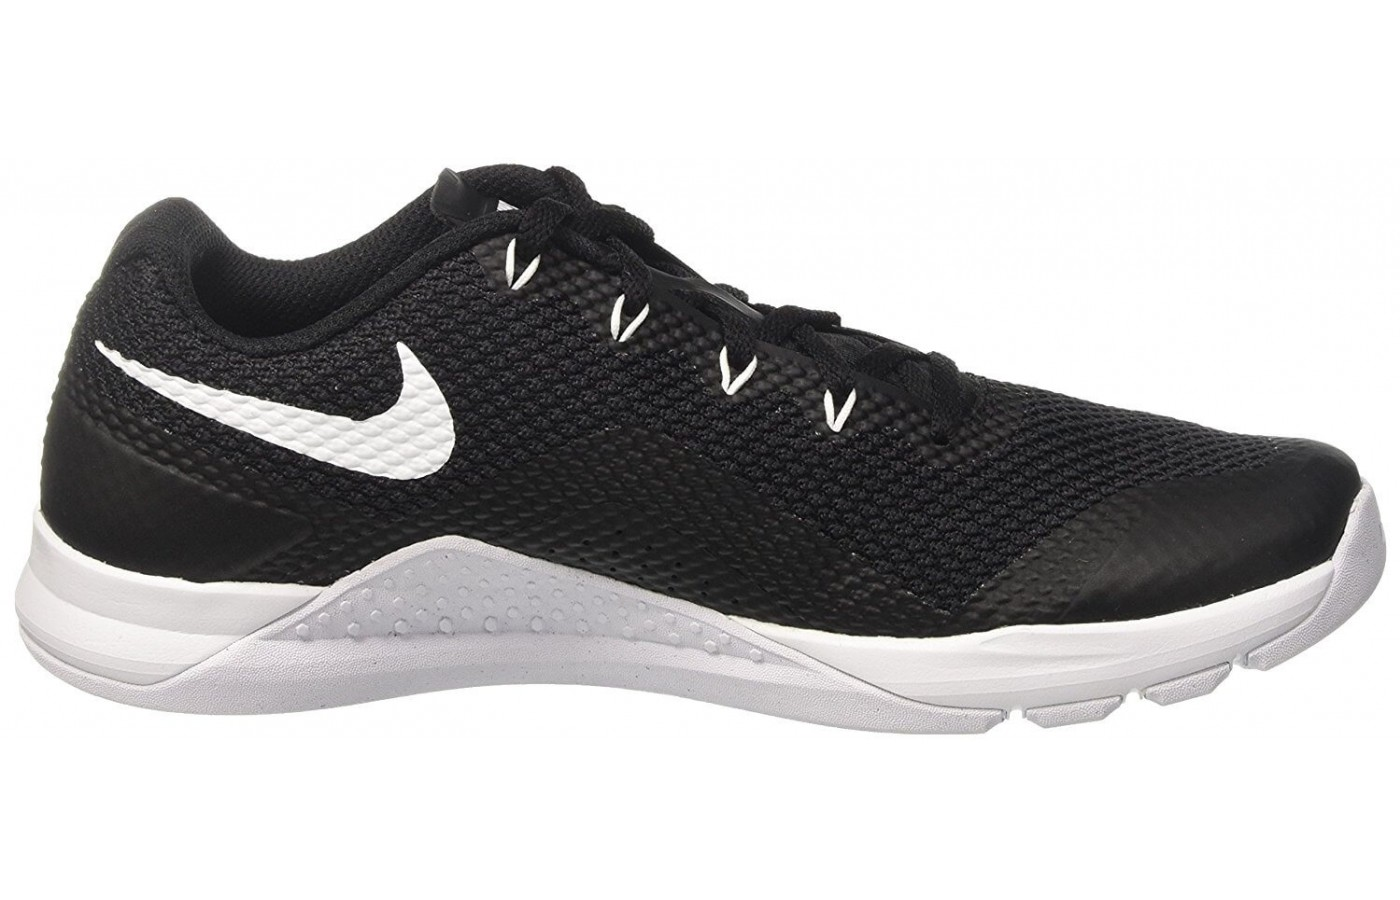 The Nike Metcon Repper DSX features a Flywire lacing system